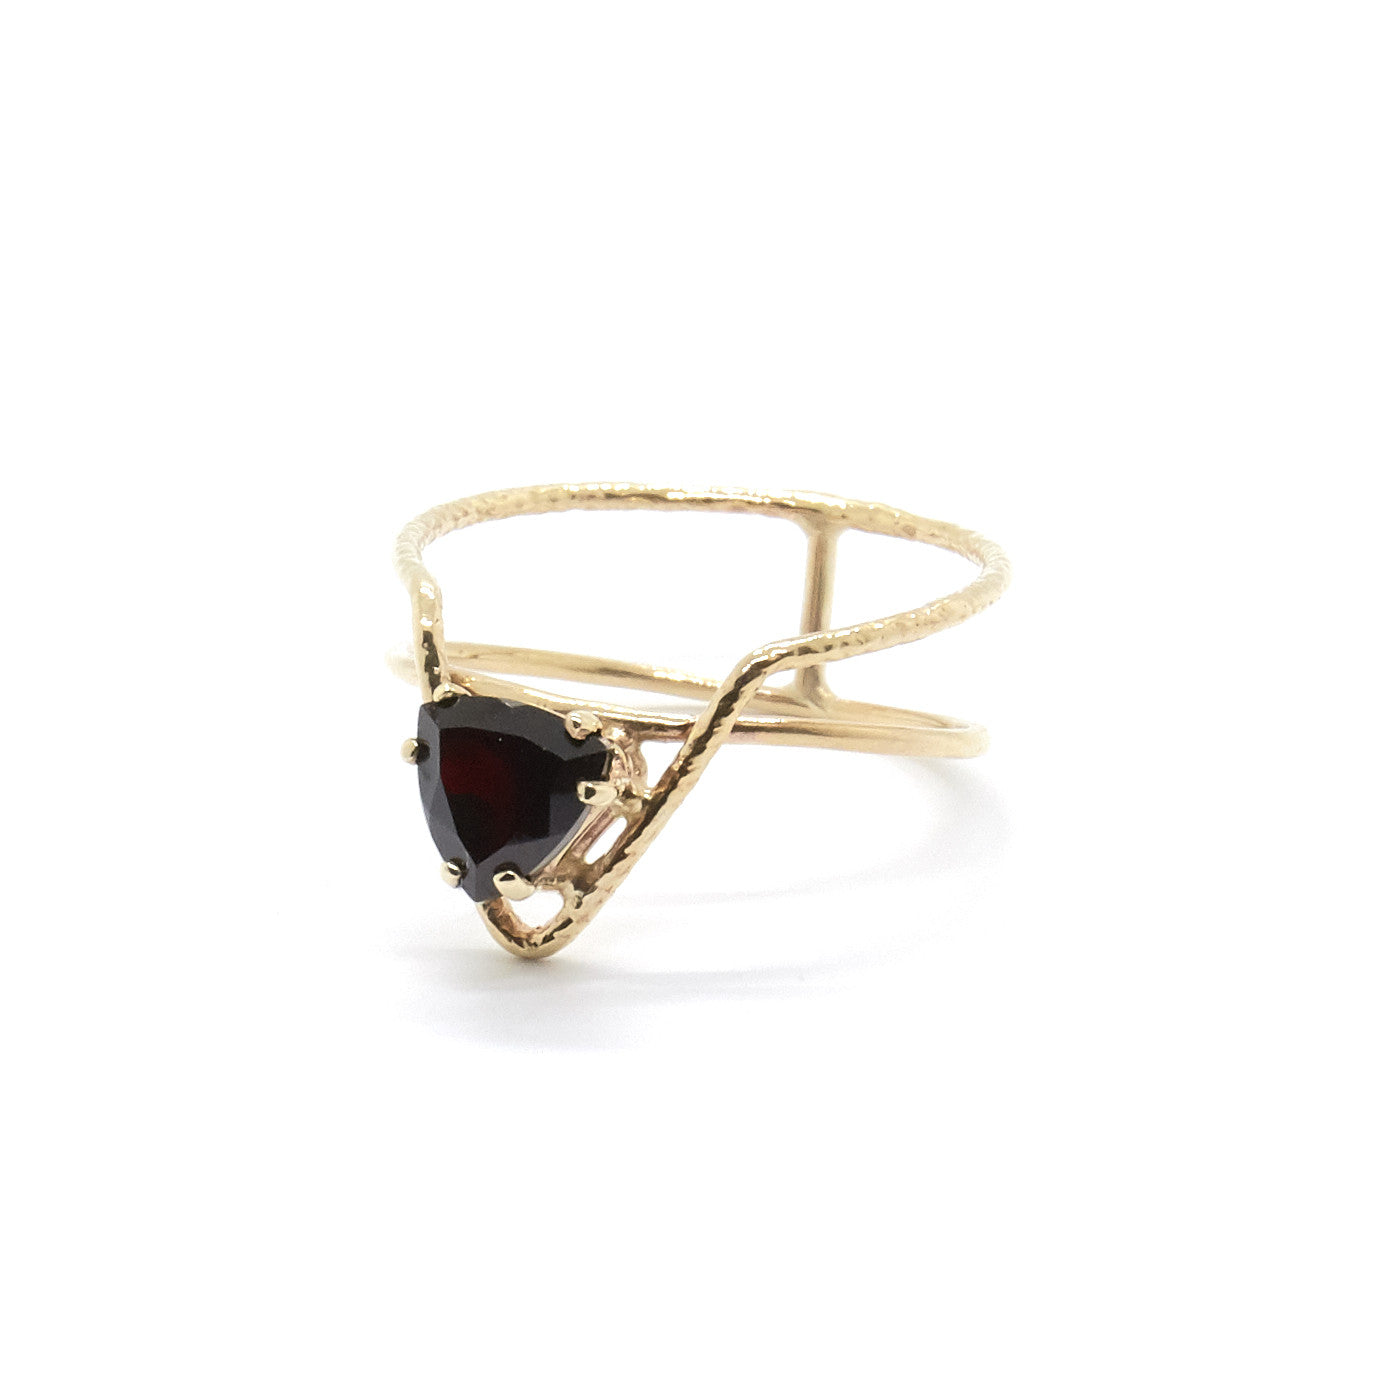 Offset Trillion Ring with Black Spinel